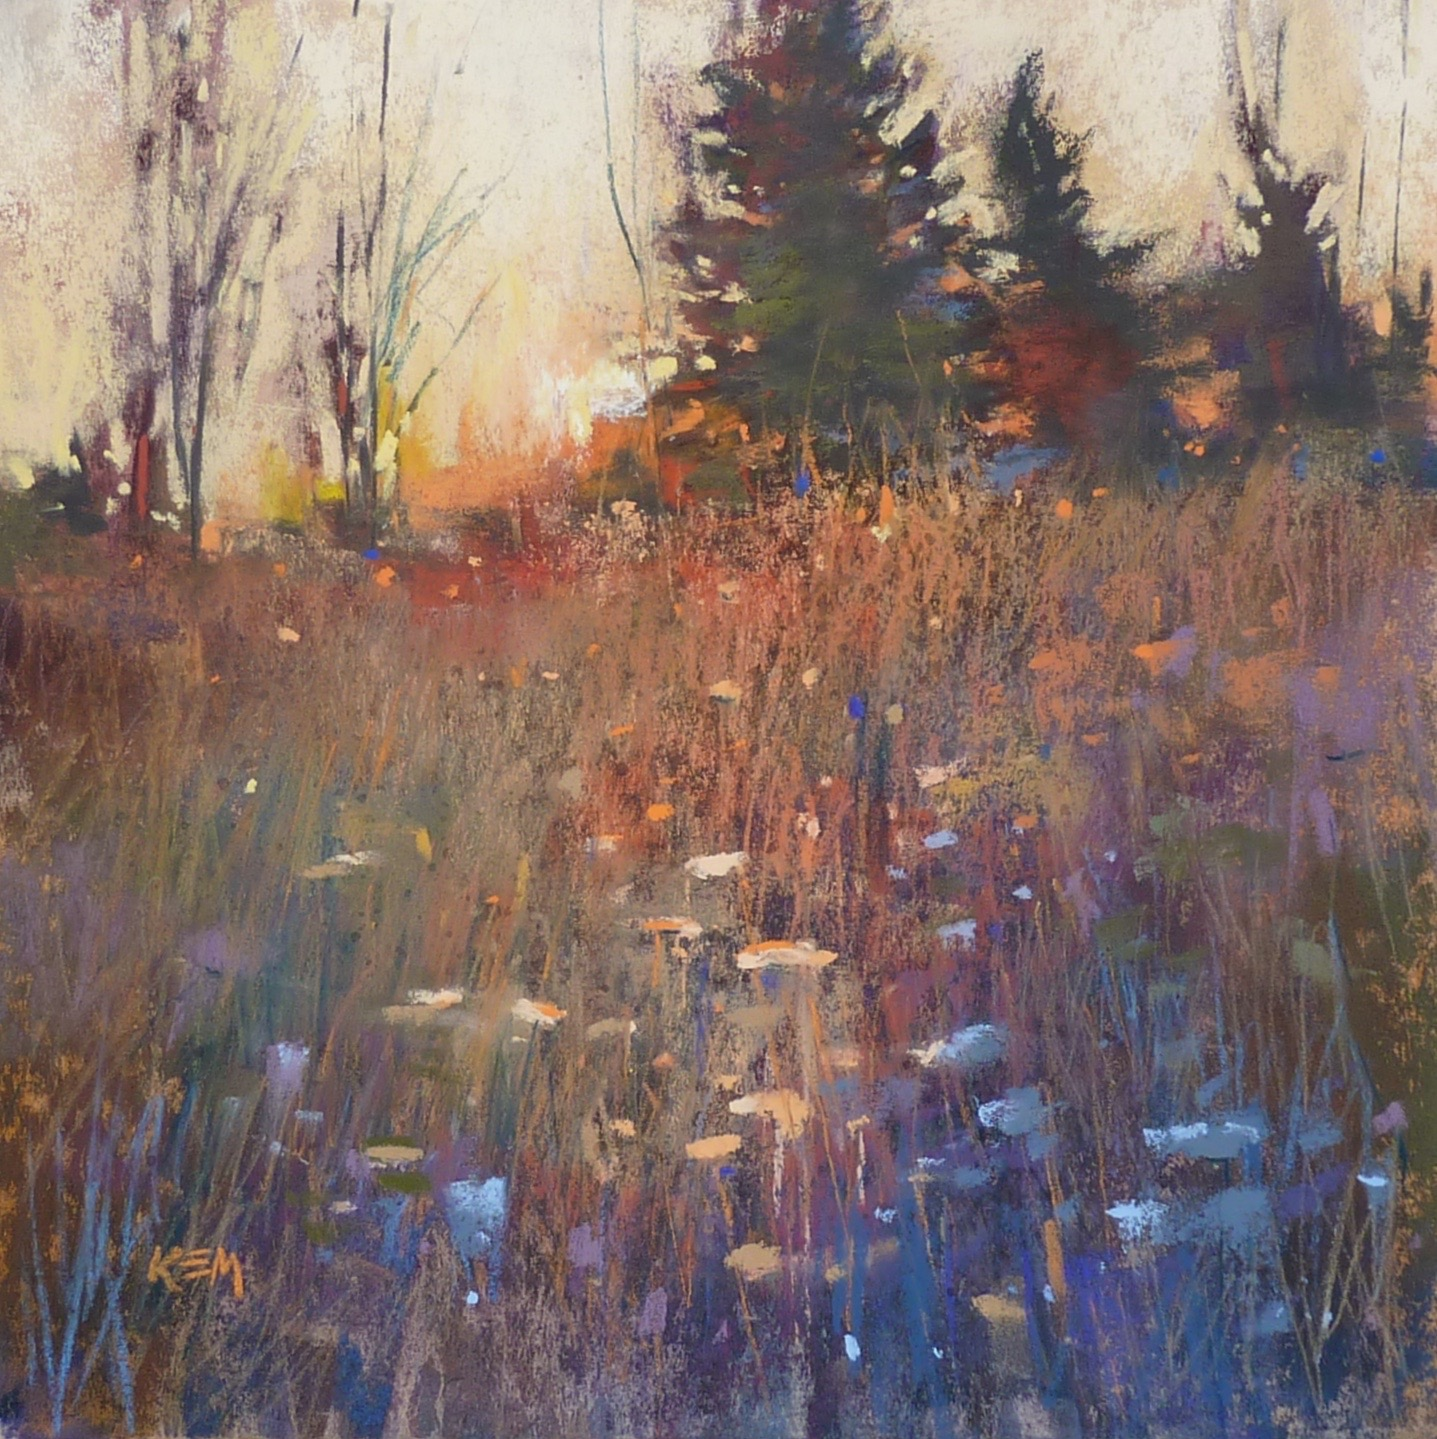 Painting: Painting My World: An Easy Tip For Finishing A Painting